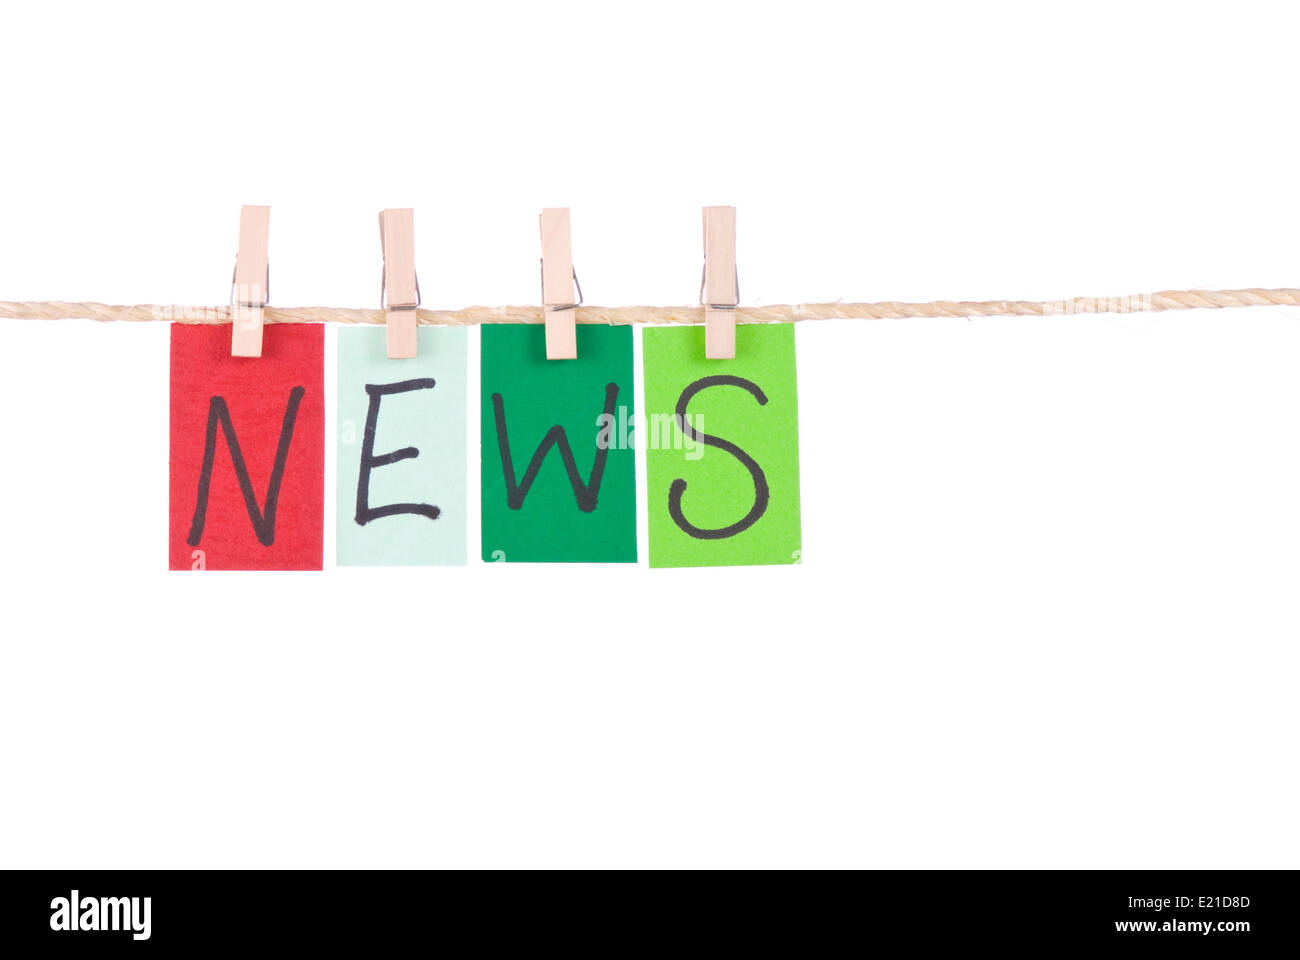 News, Colorful words hang on rope - Stock Image